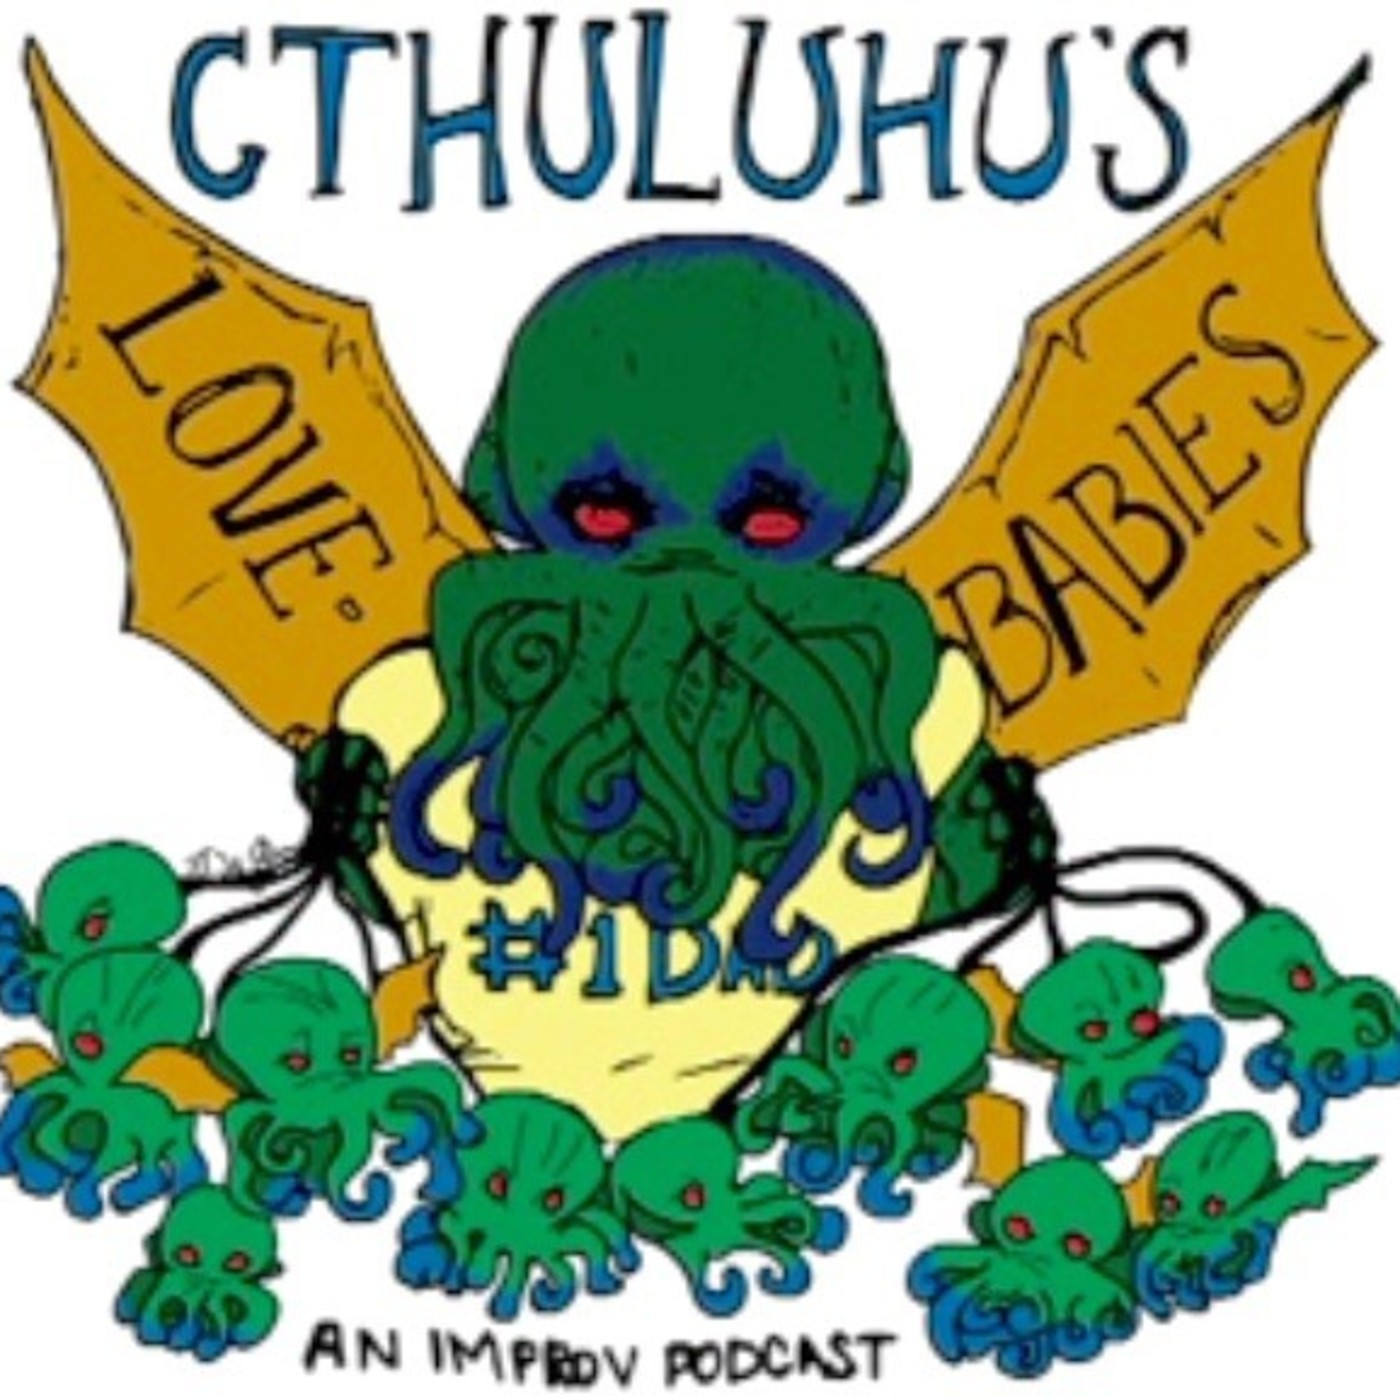 Cthulhu's Love Babies' Podcast